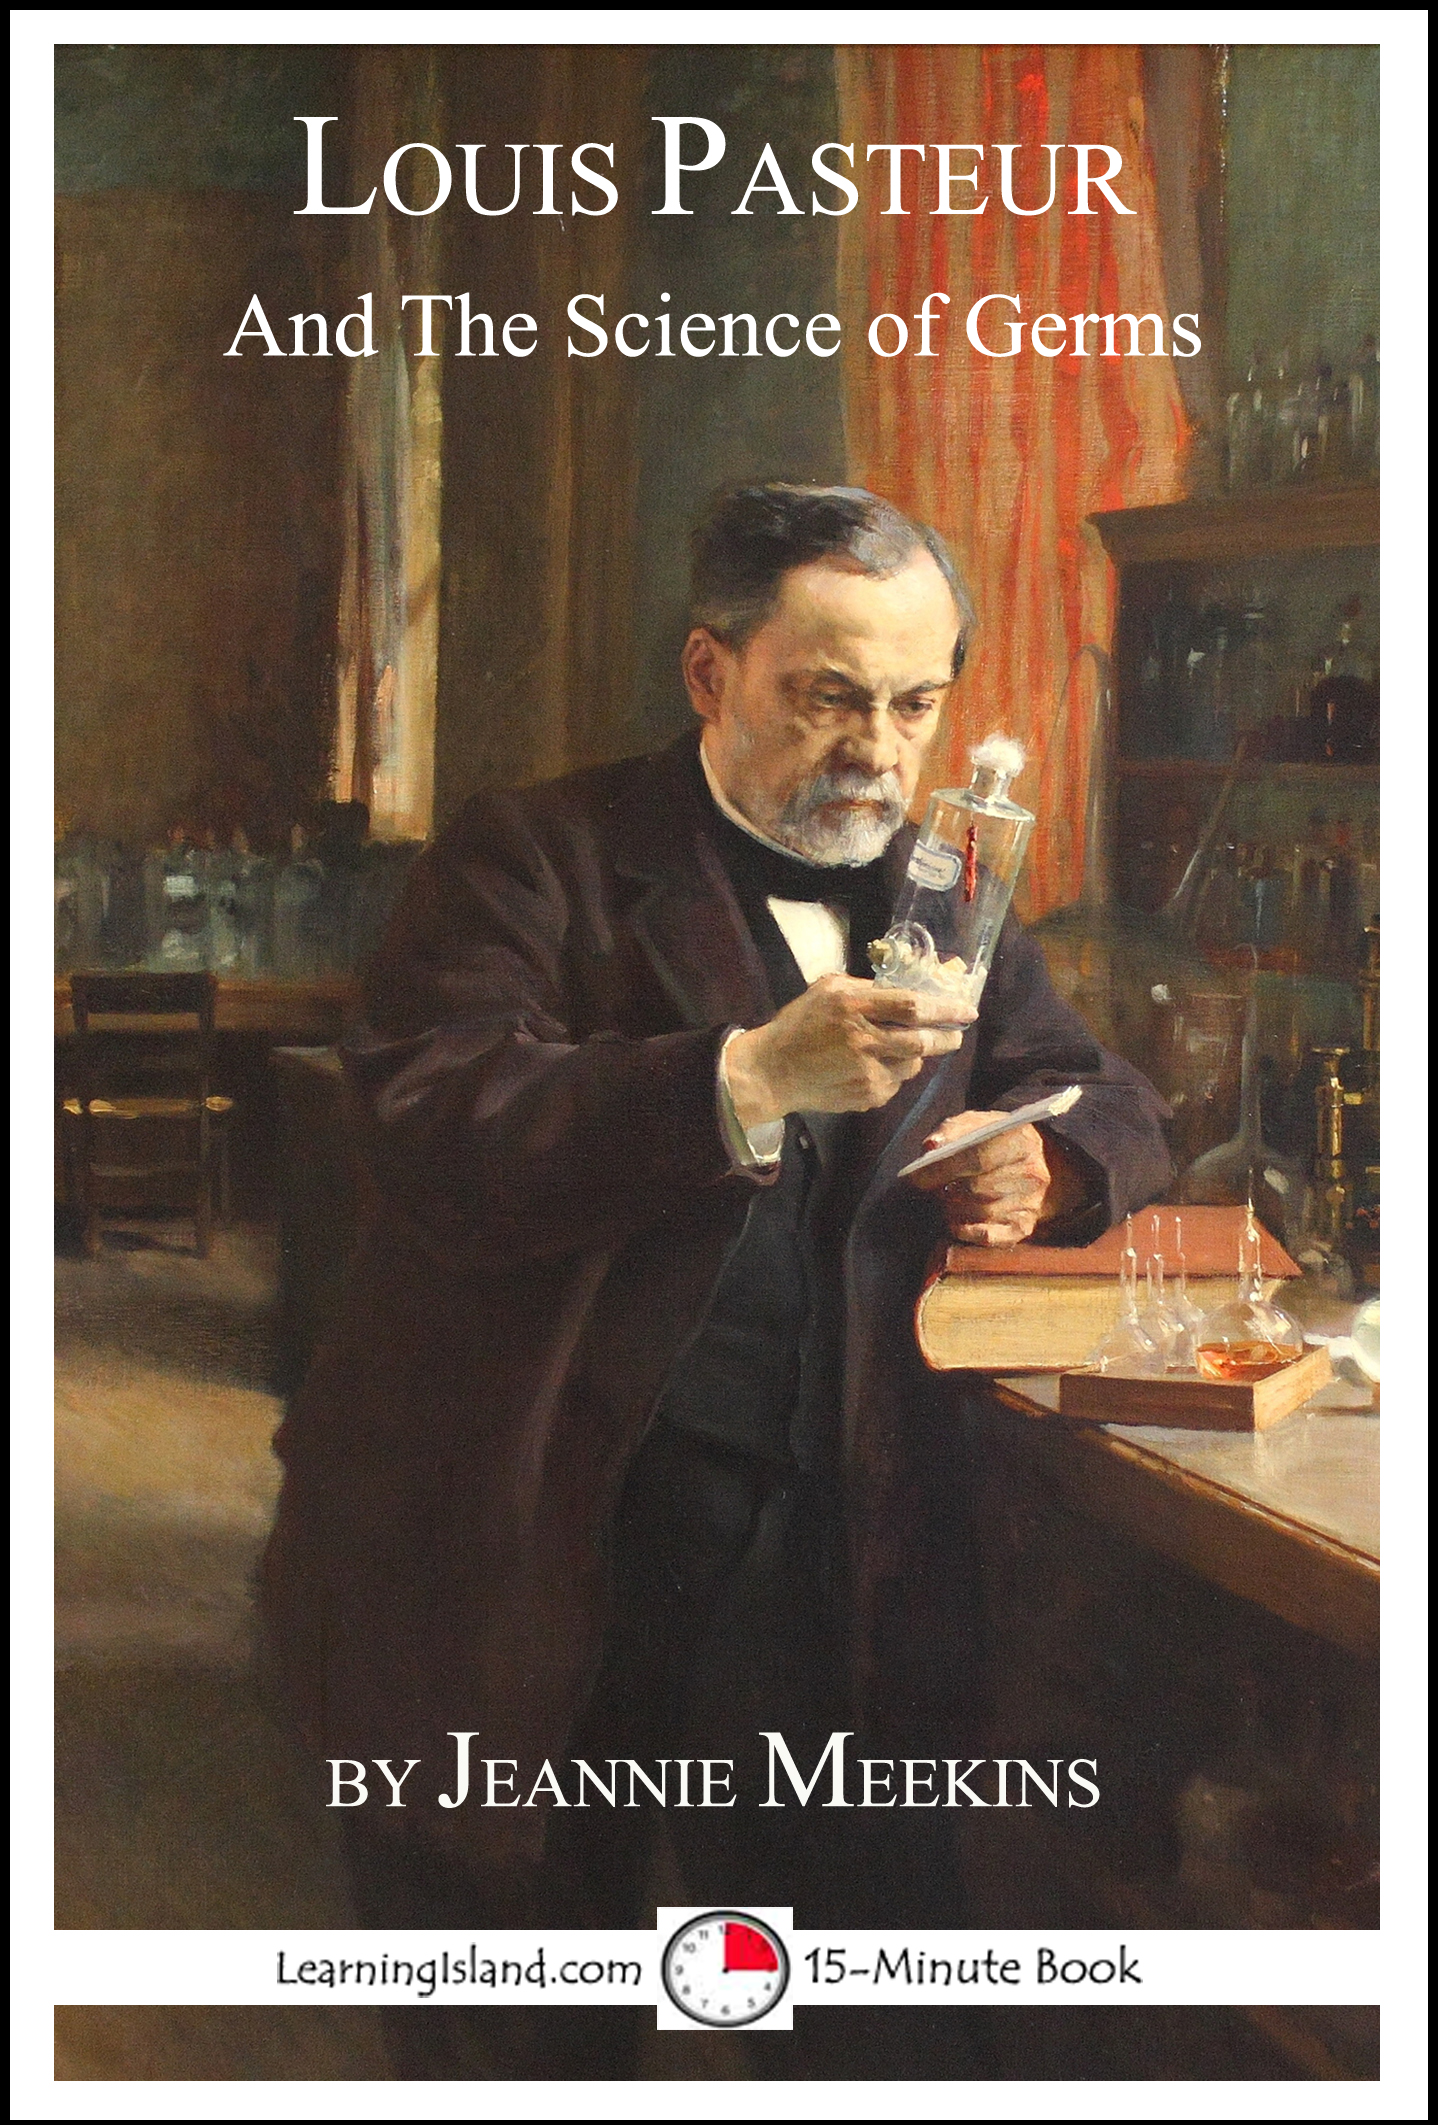 an analysis of scientific knowledge by an french scientist by the name of louis pasteur There are science and the applications of nineteenth century french scientist  the french scientific establishment found pasteur's disproof of.